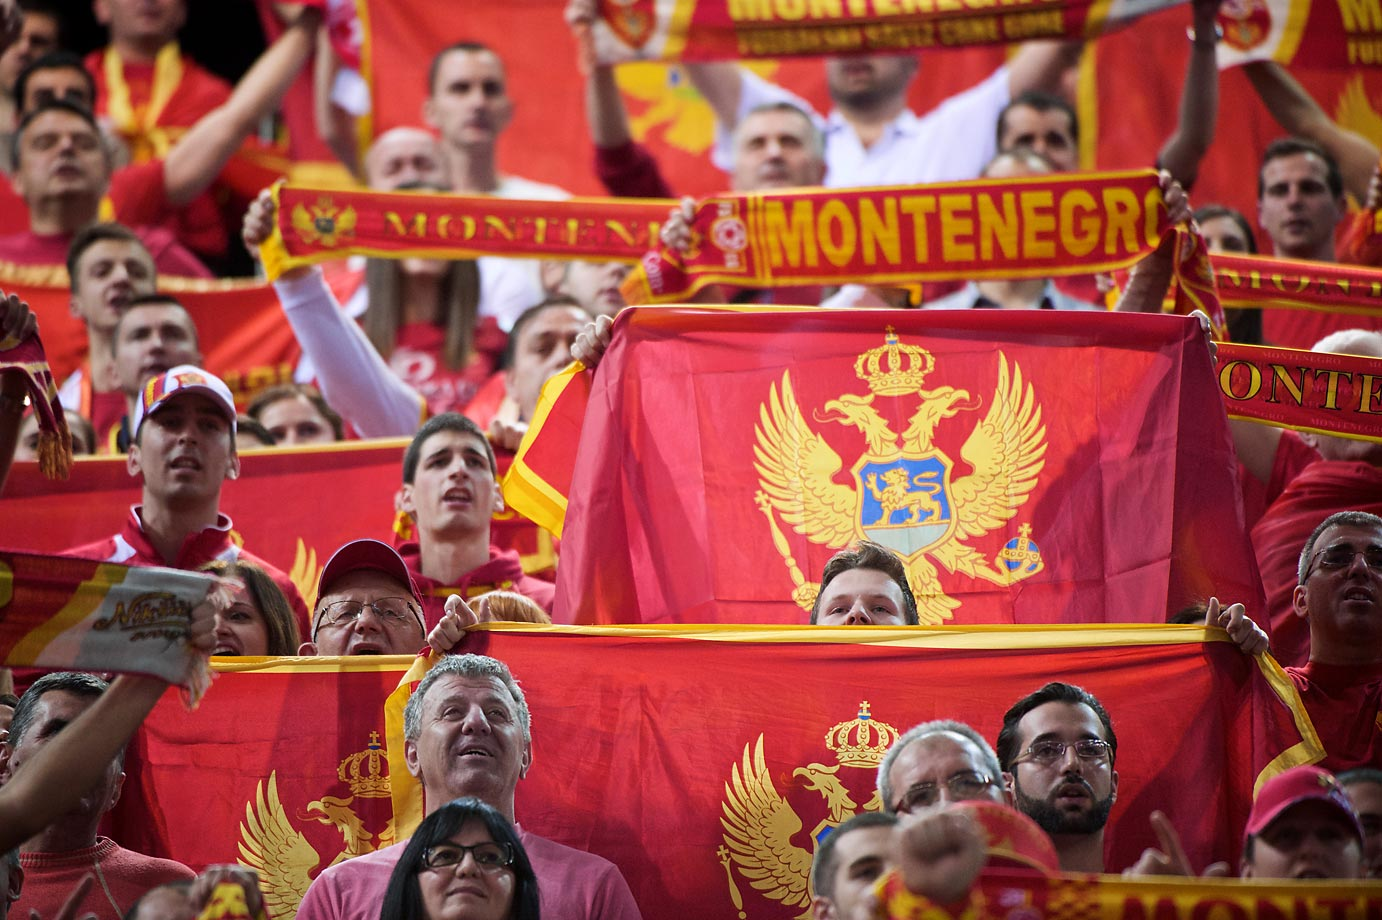 Fans cheer the Montenegro team.